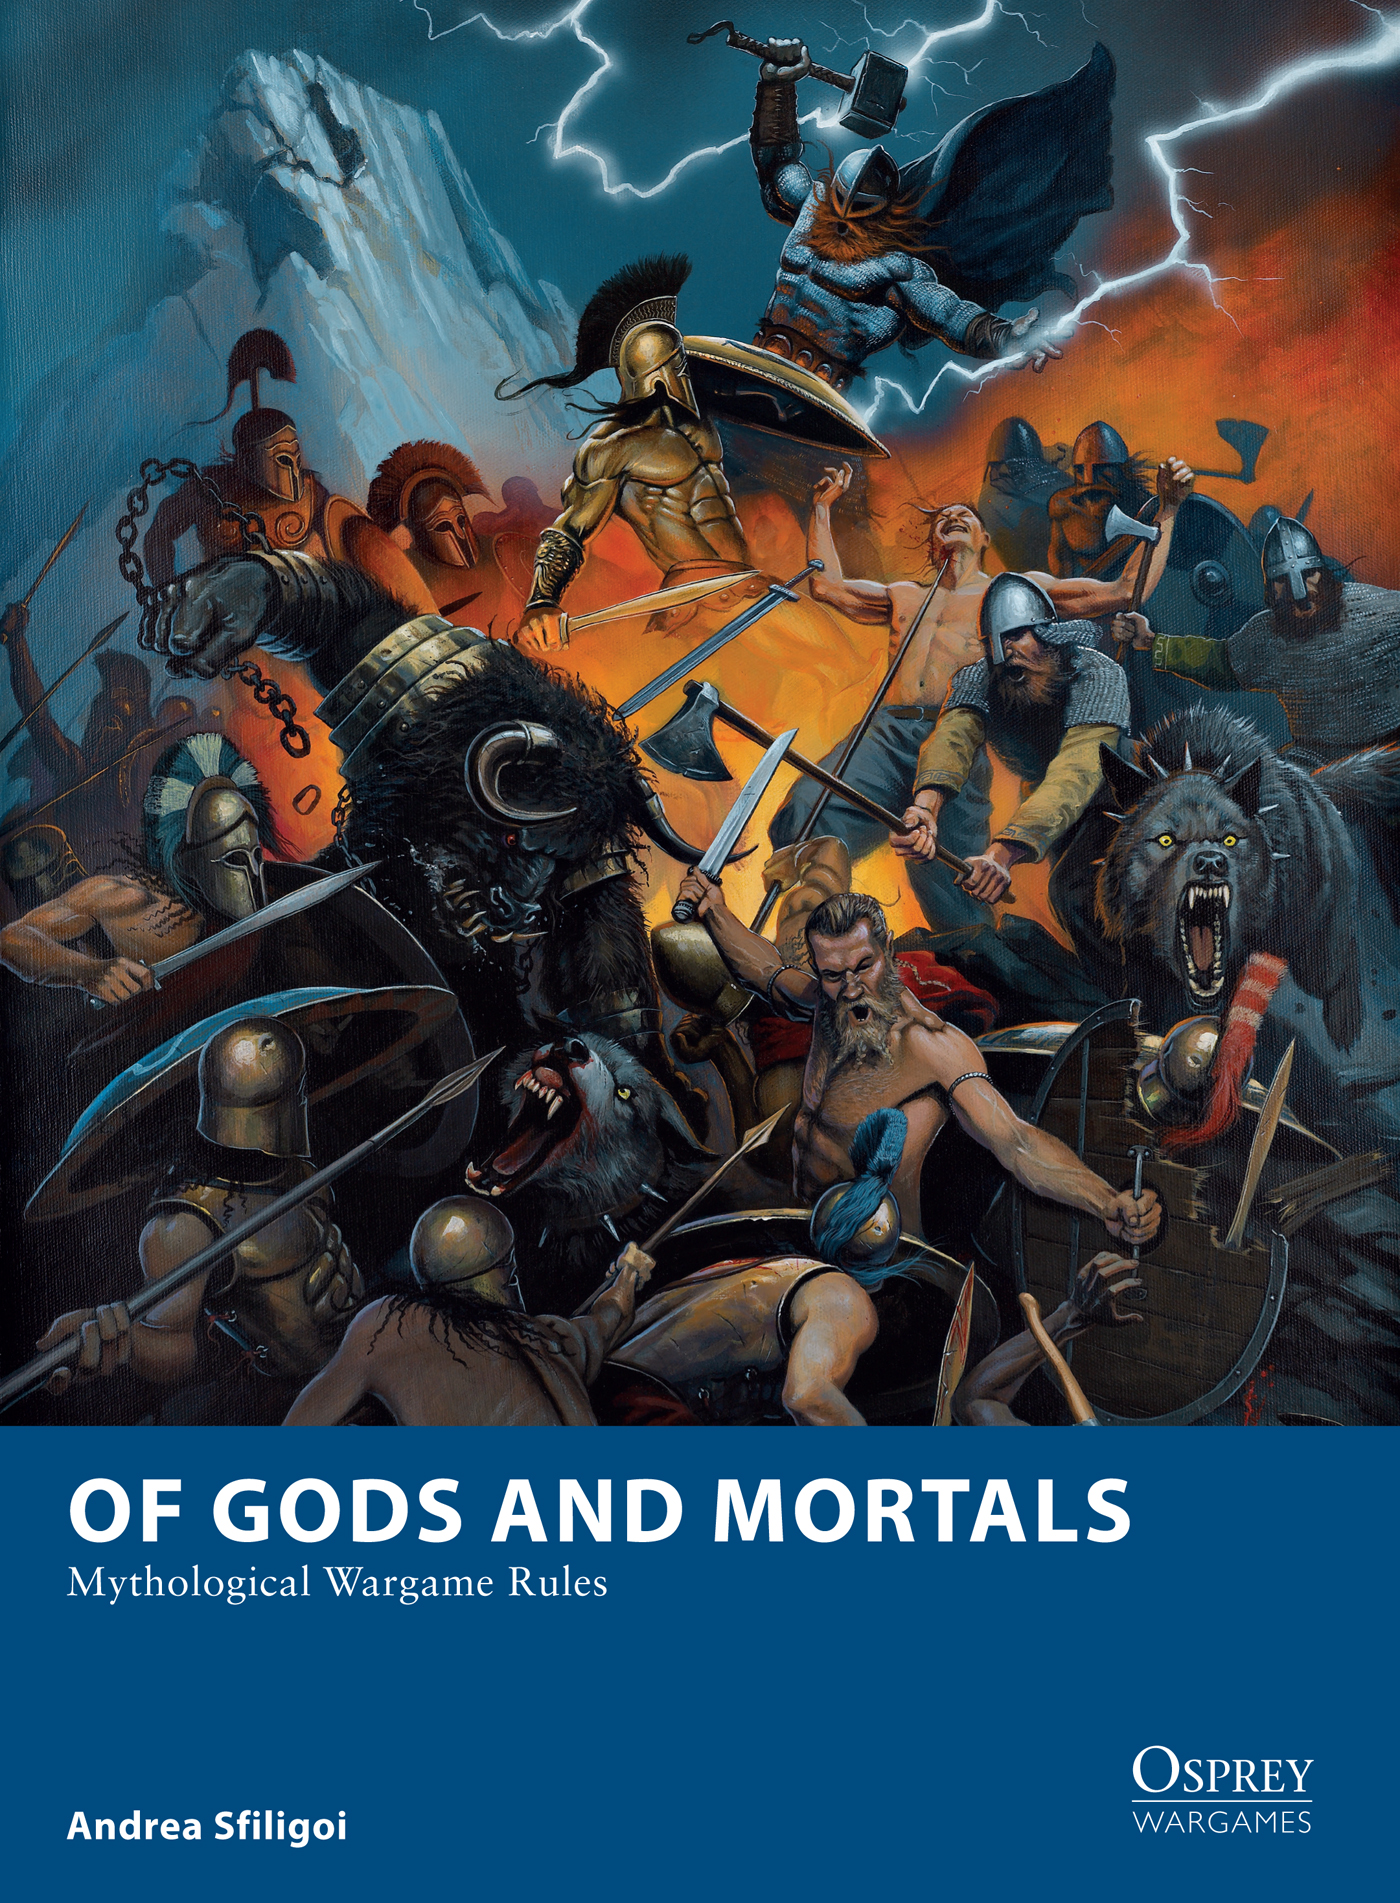 Of Gods and Mortals: Mythological Wargame Rules